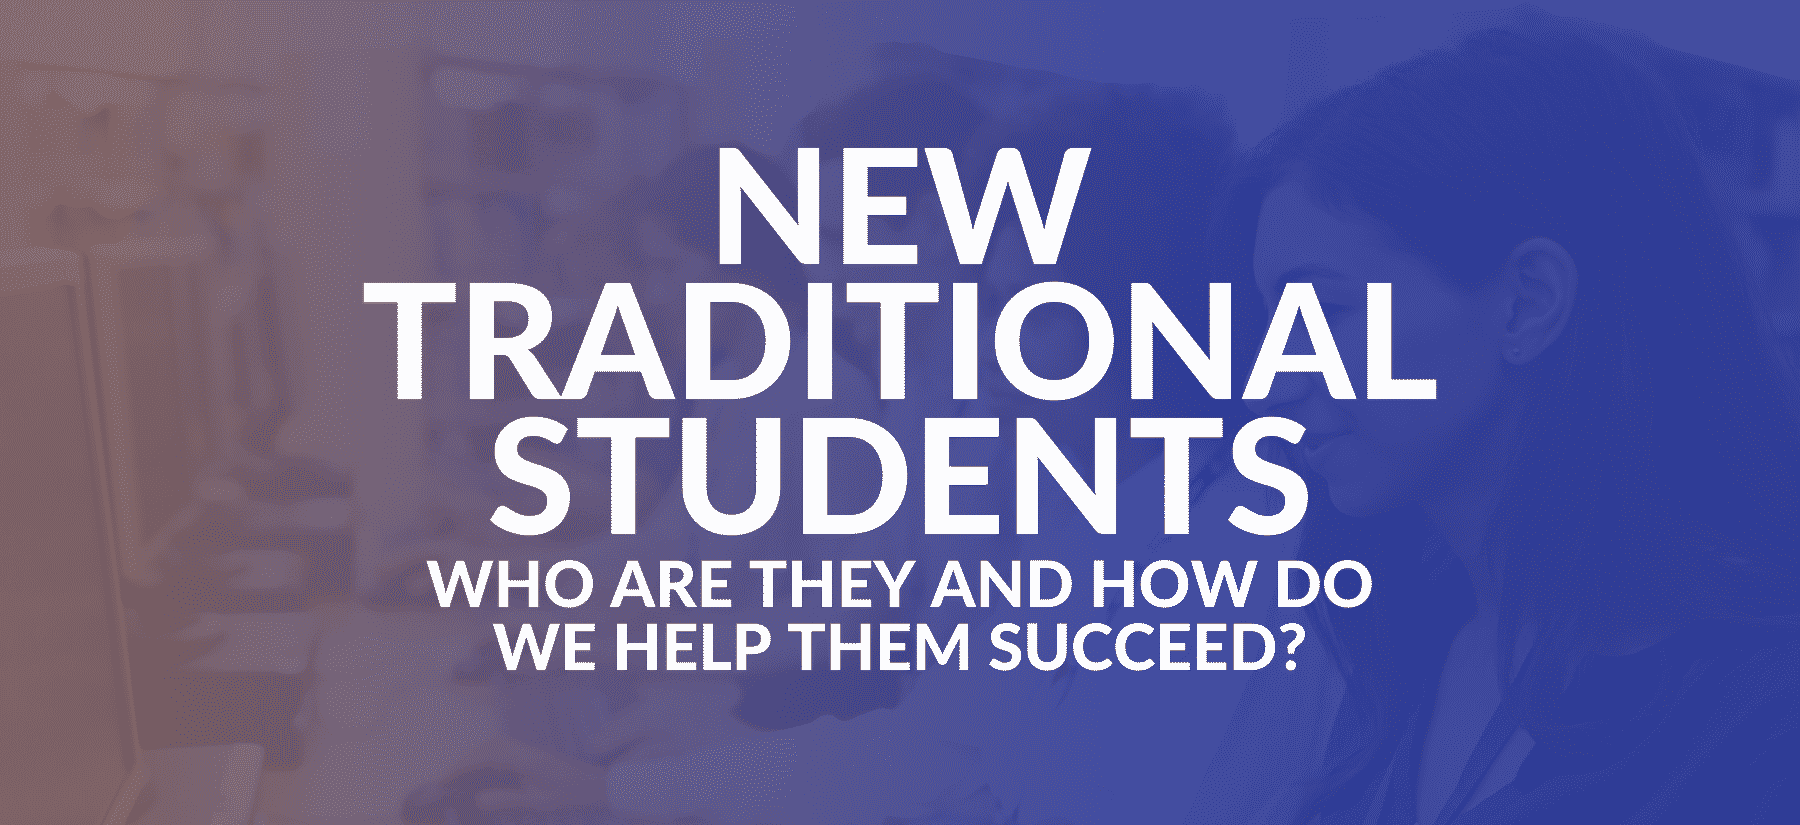 new traditional students